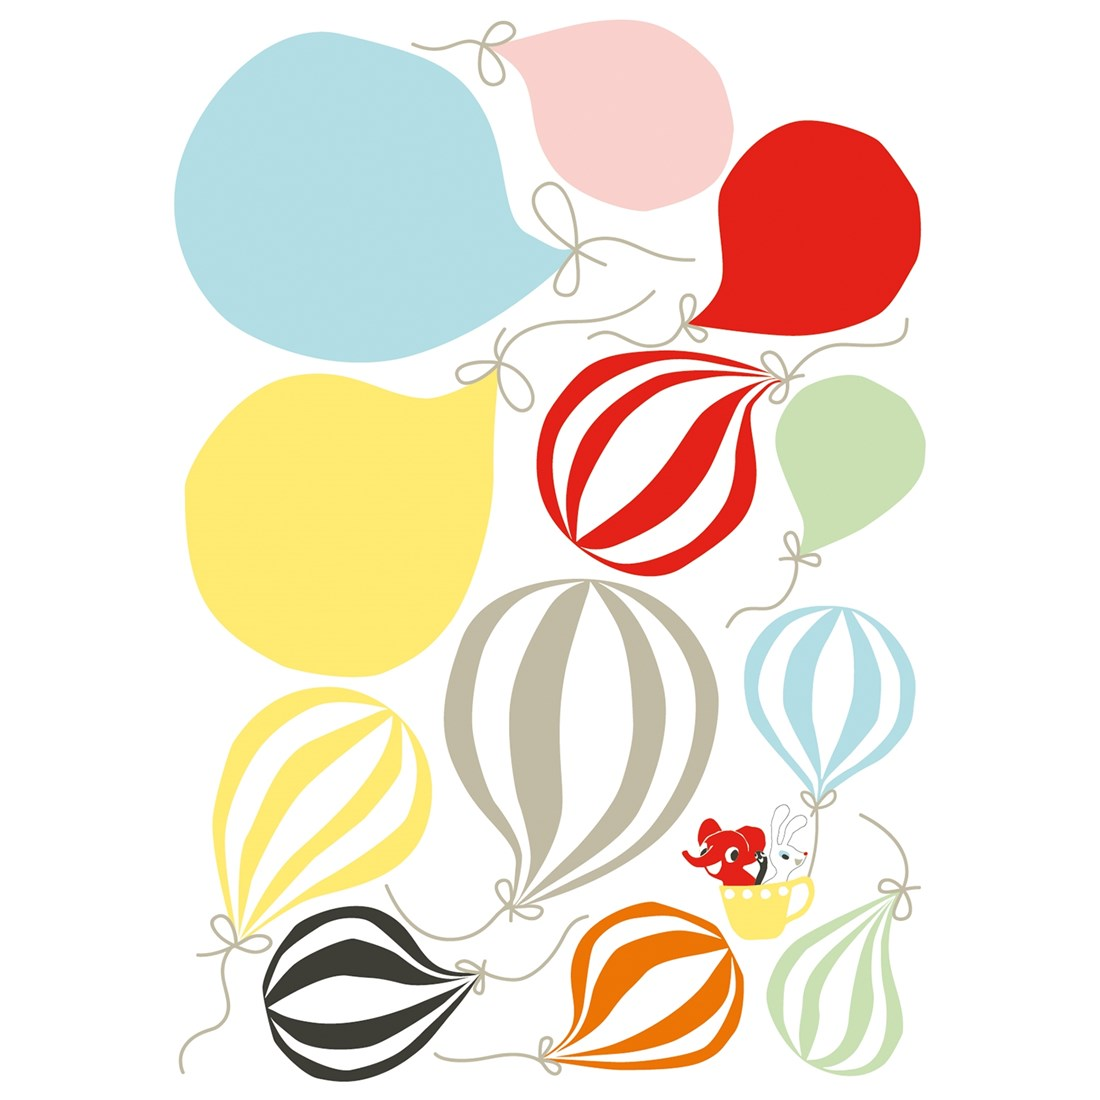 Wallsticker Ballons